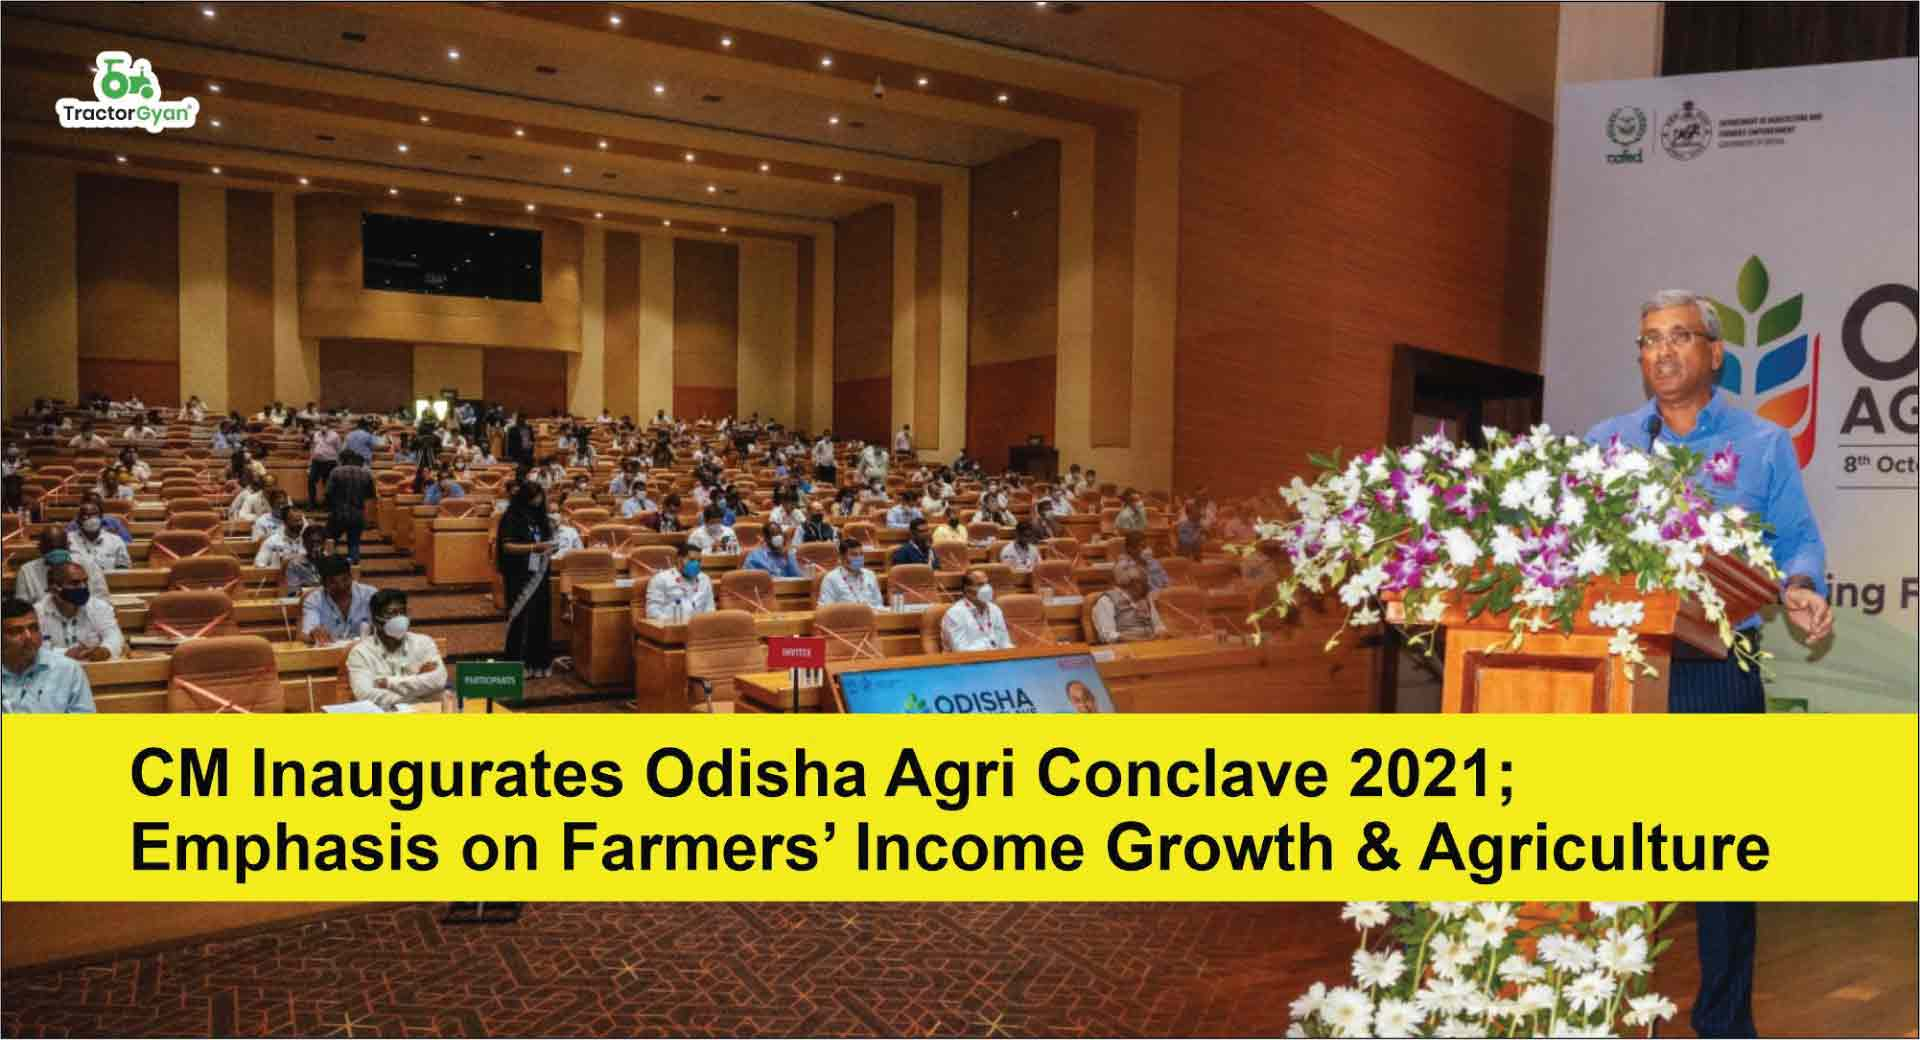 CM Inaugurates Odisha Agri Conclave 2021; Emphasis on Farmers' Income Growth & Agriculture